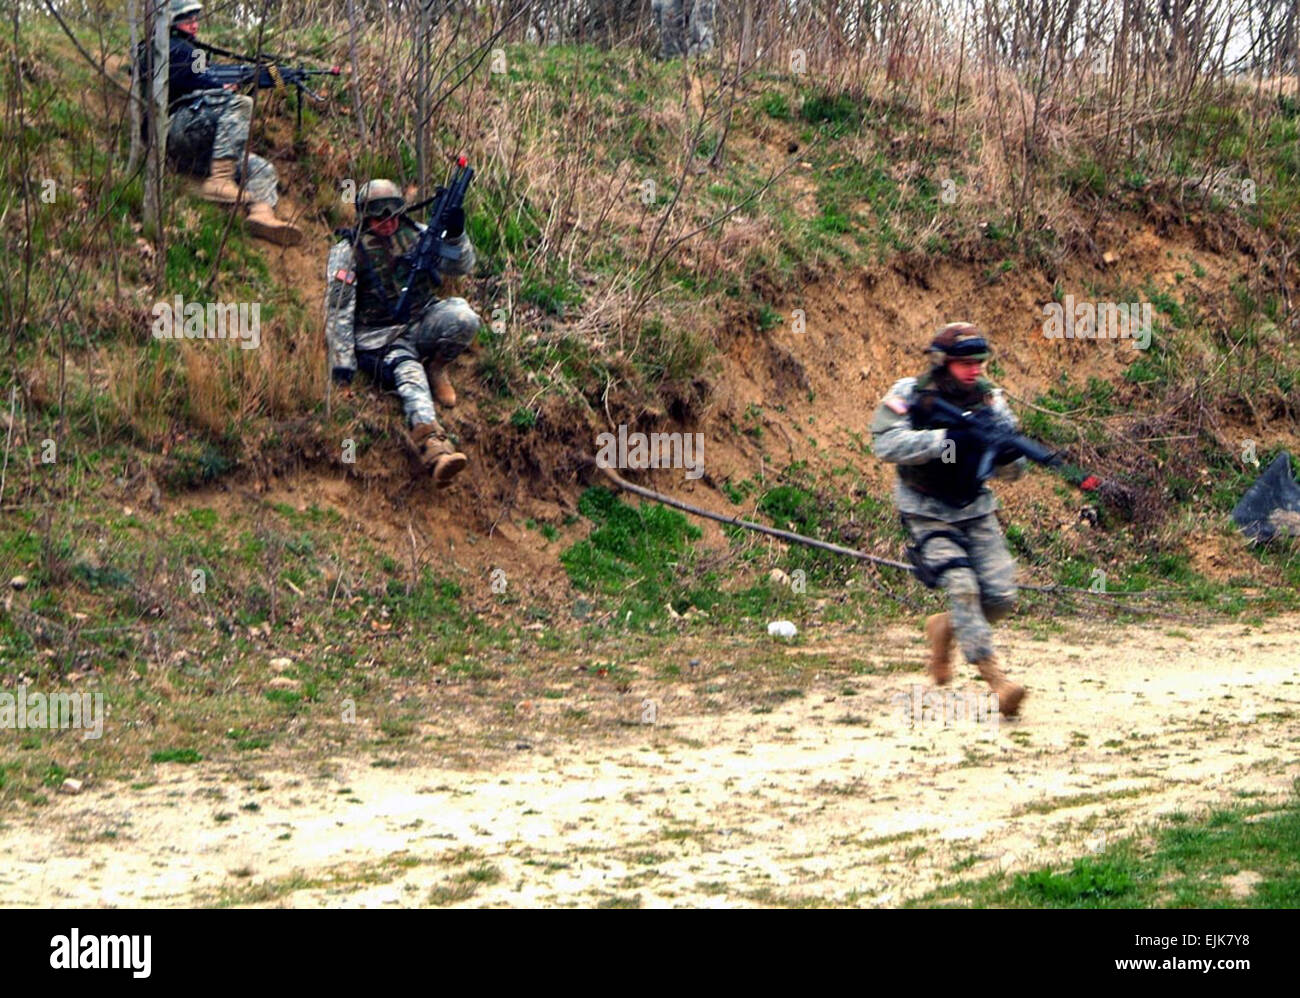 U.S. Army Soldiers from the 501st Military Police Company scramble down a berm toward their objective during squad - Stock Image